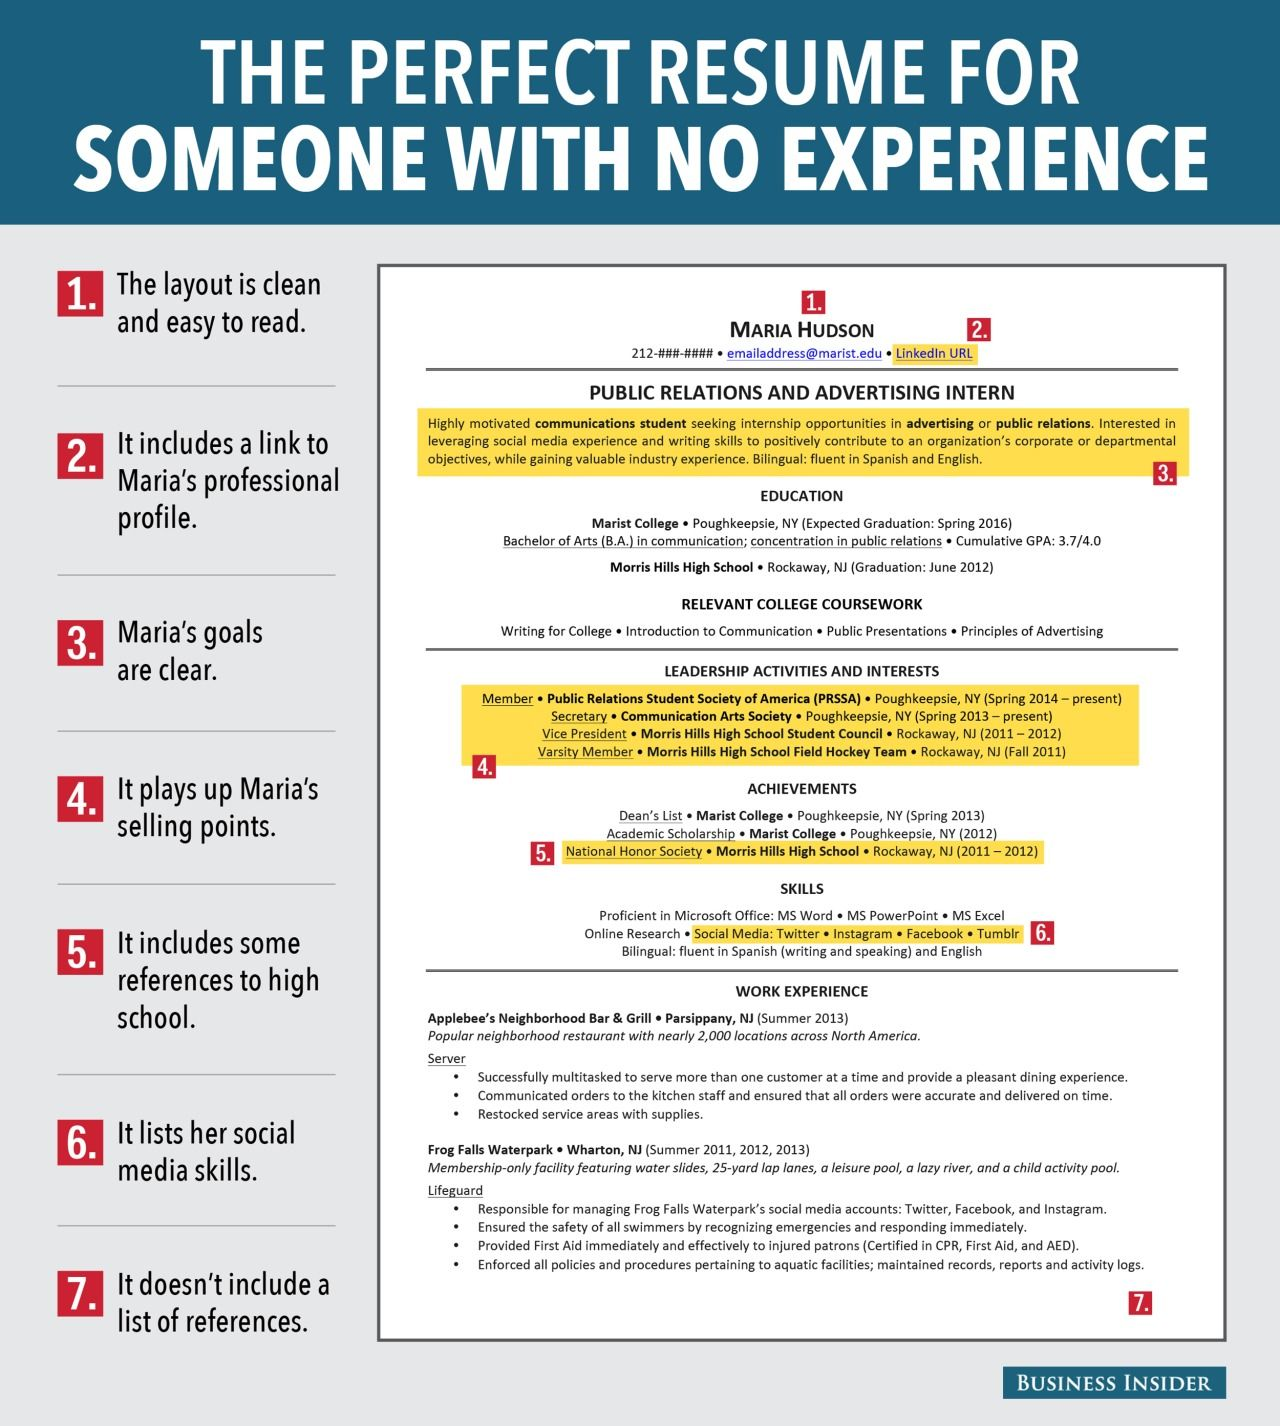 infographic 7 reasons this is an excellent resume for someone with no experience